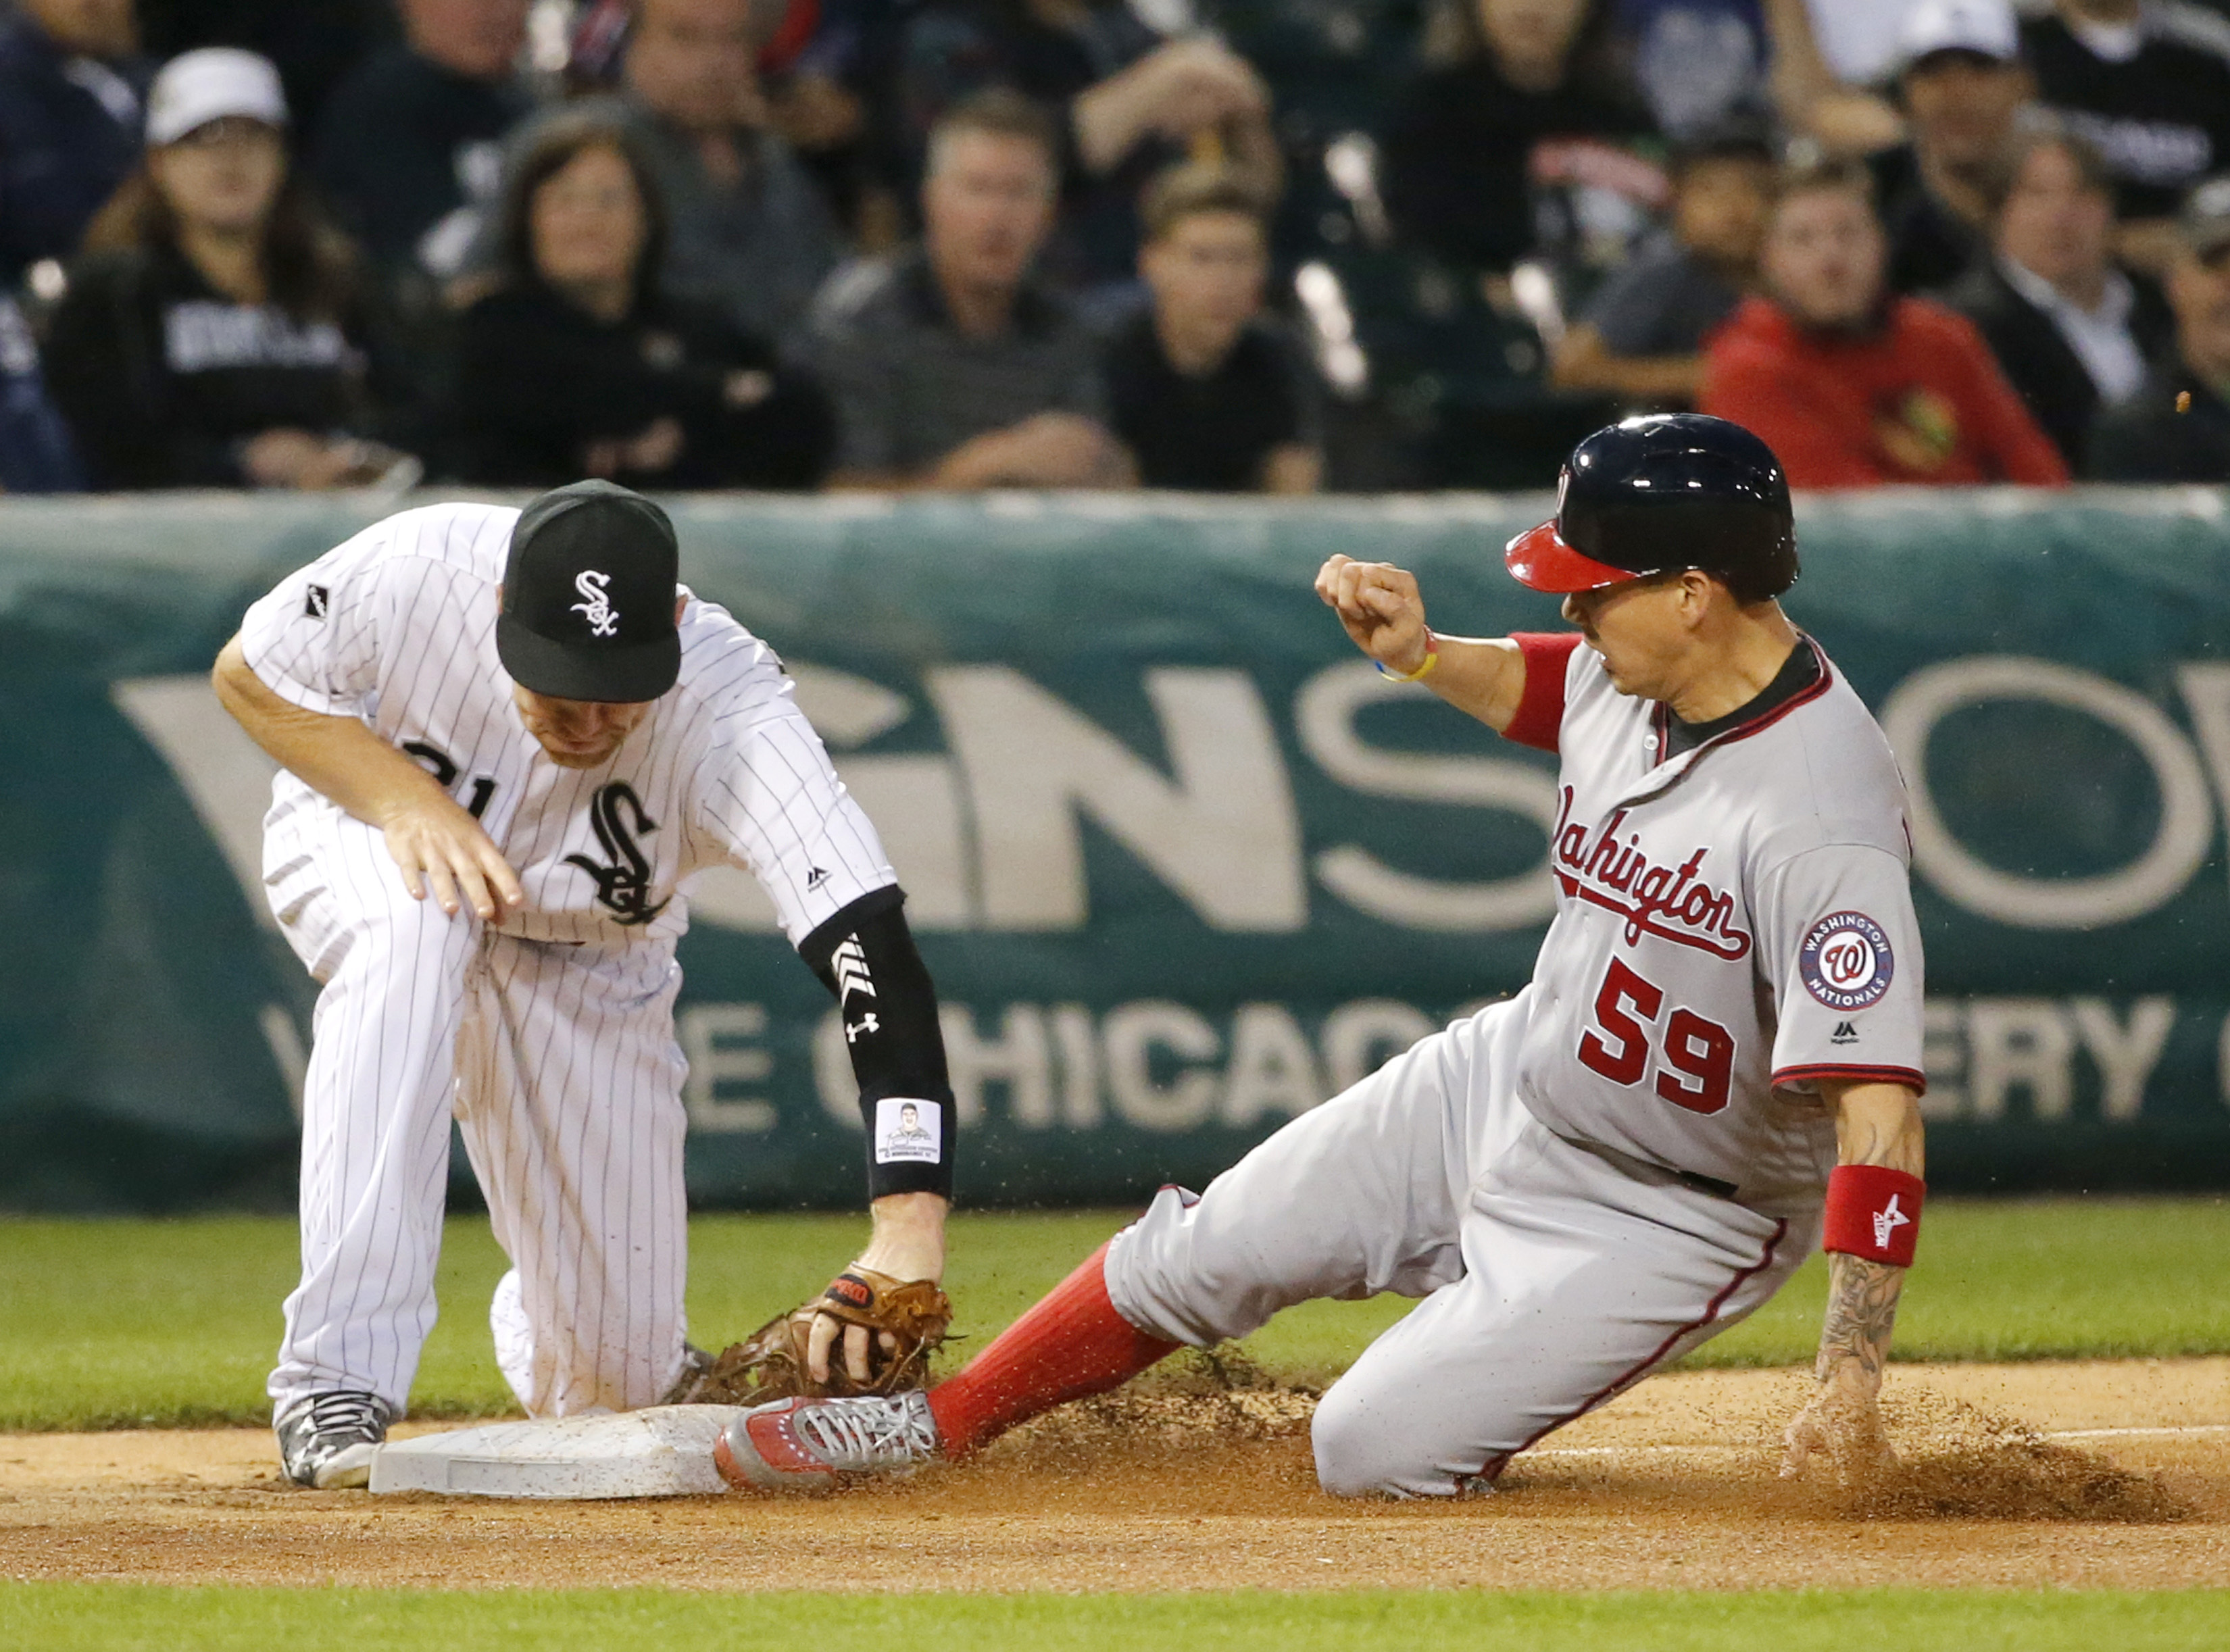 Washington Nationals' Jose Lobaton (59) slides safely into third as Chicago White Sox's Todd Frazier fields a throw from Melky Cabrera during the sixth inning of a baseball game Thursday, June 9, 2016, in Chicago. The Chicago White Sox challenged the safe